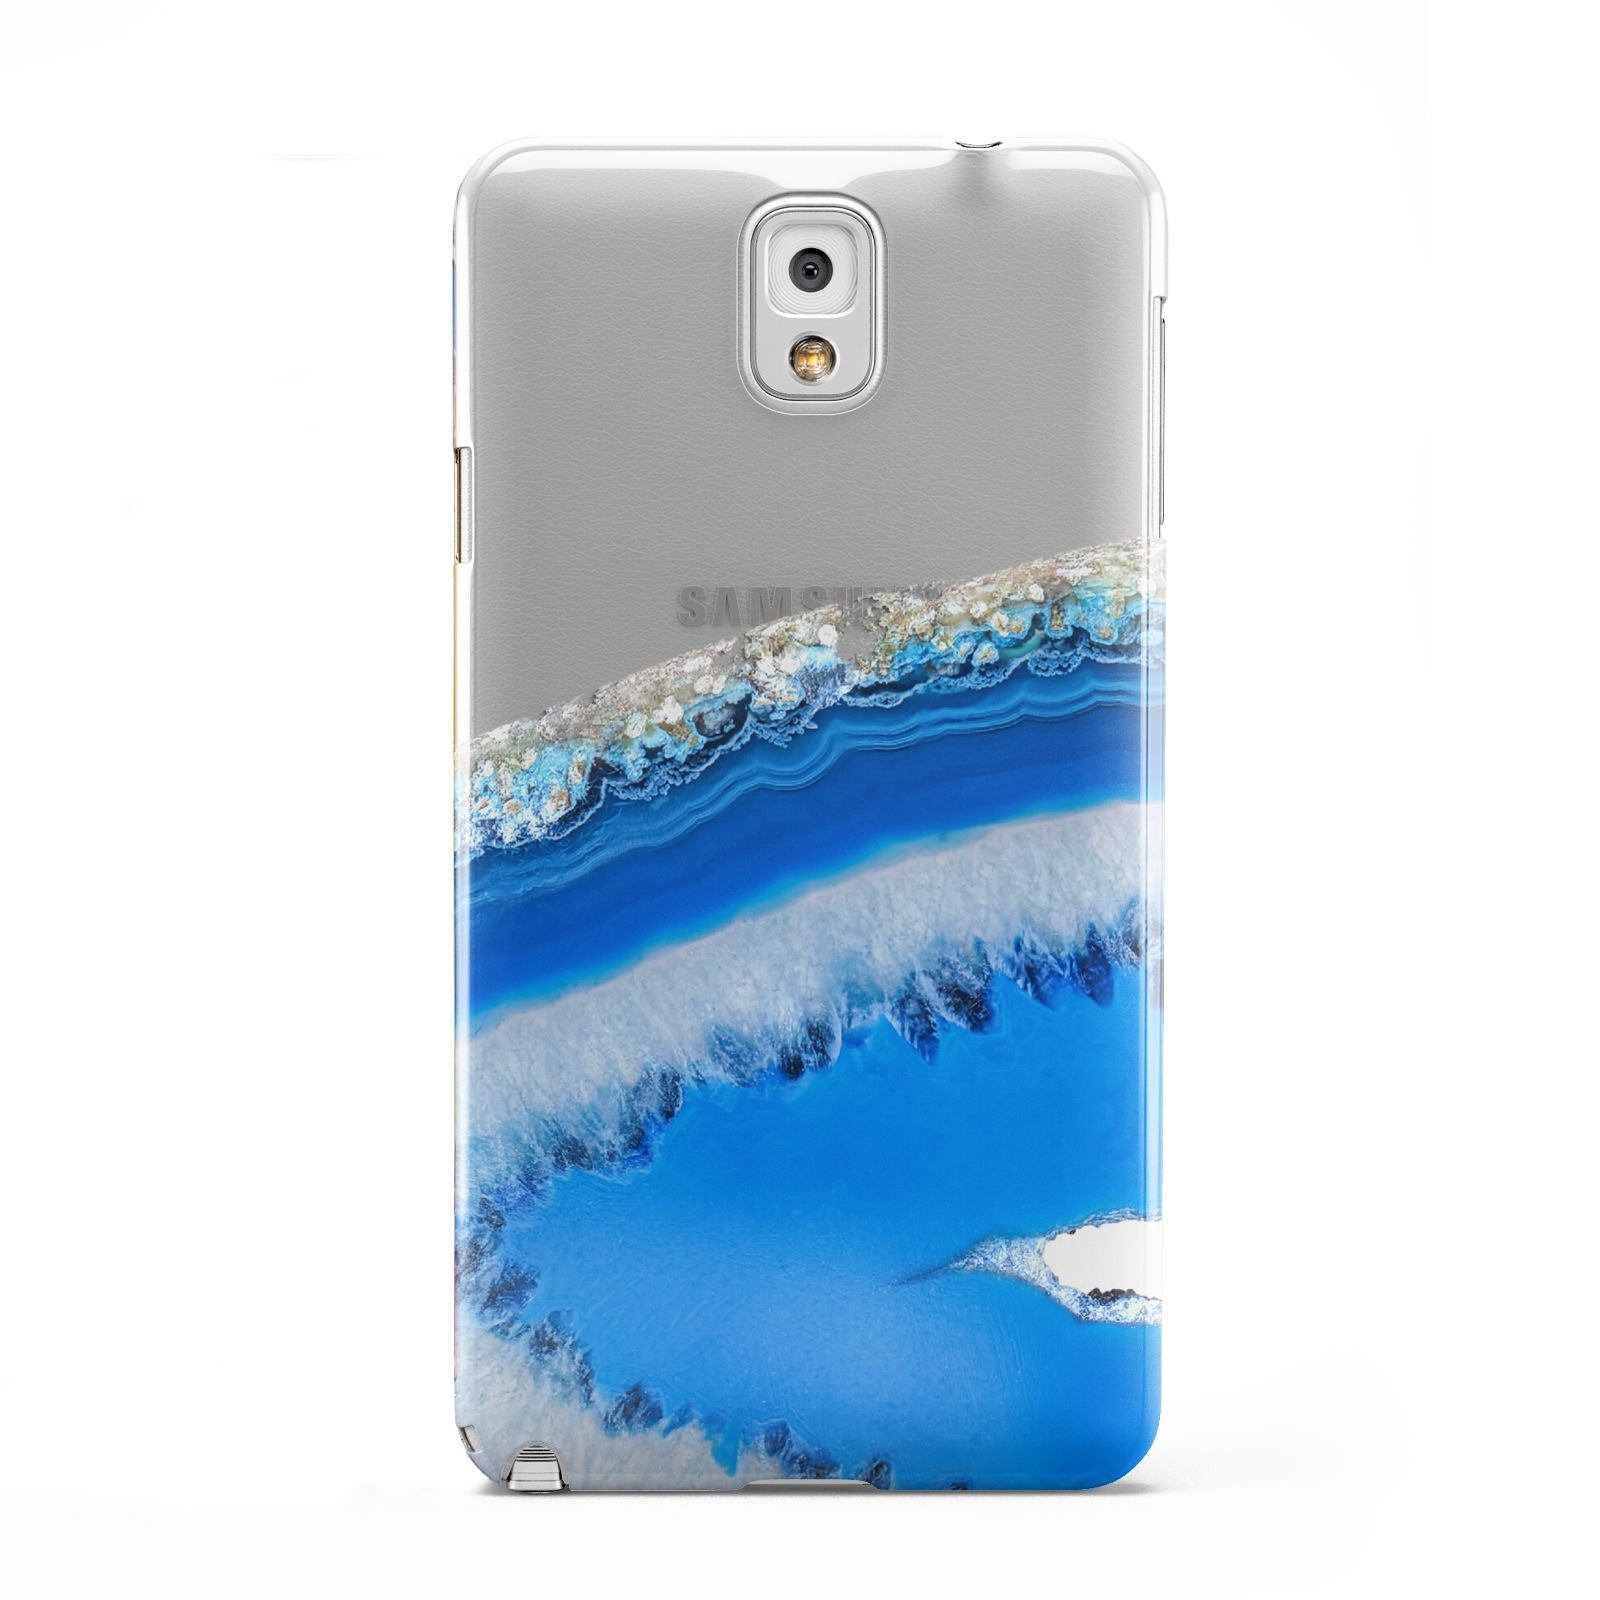 Agate Blue Samsung Galaxy Note 3 Case